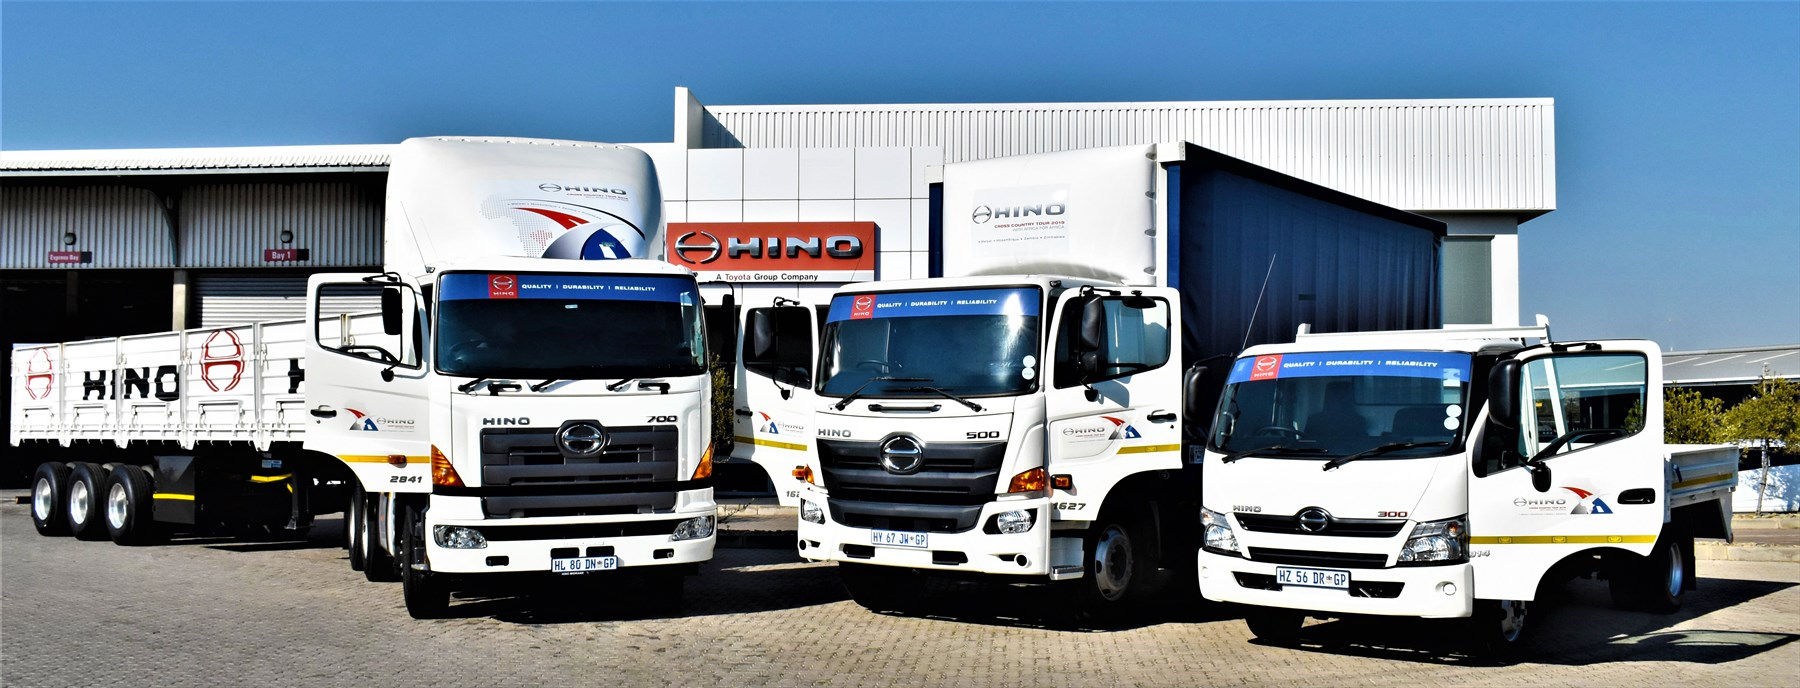 Hino's 50-day promotional roadshow into Africa proves